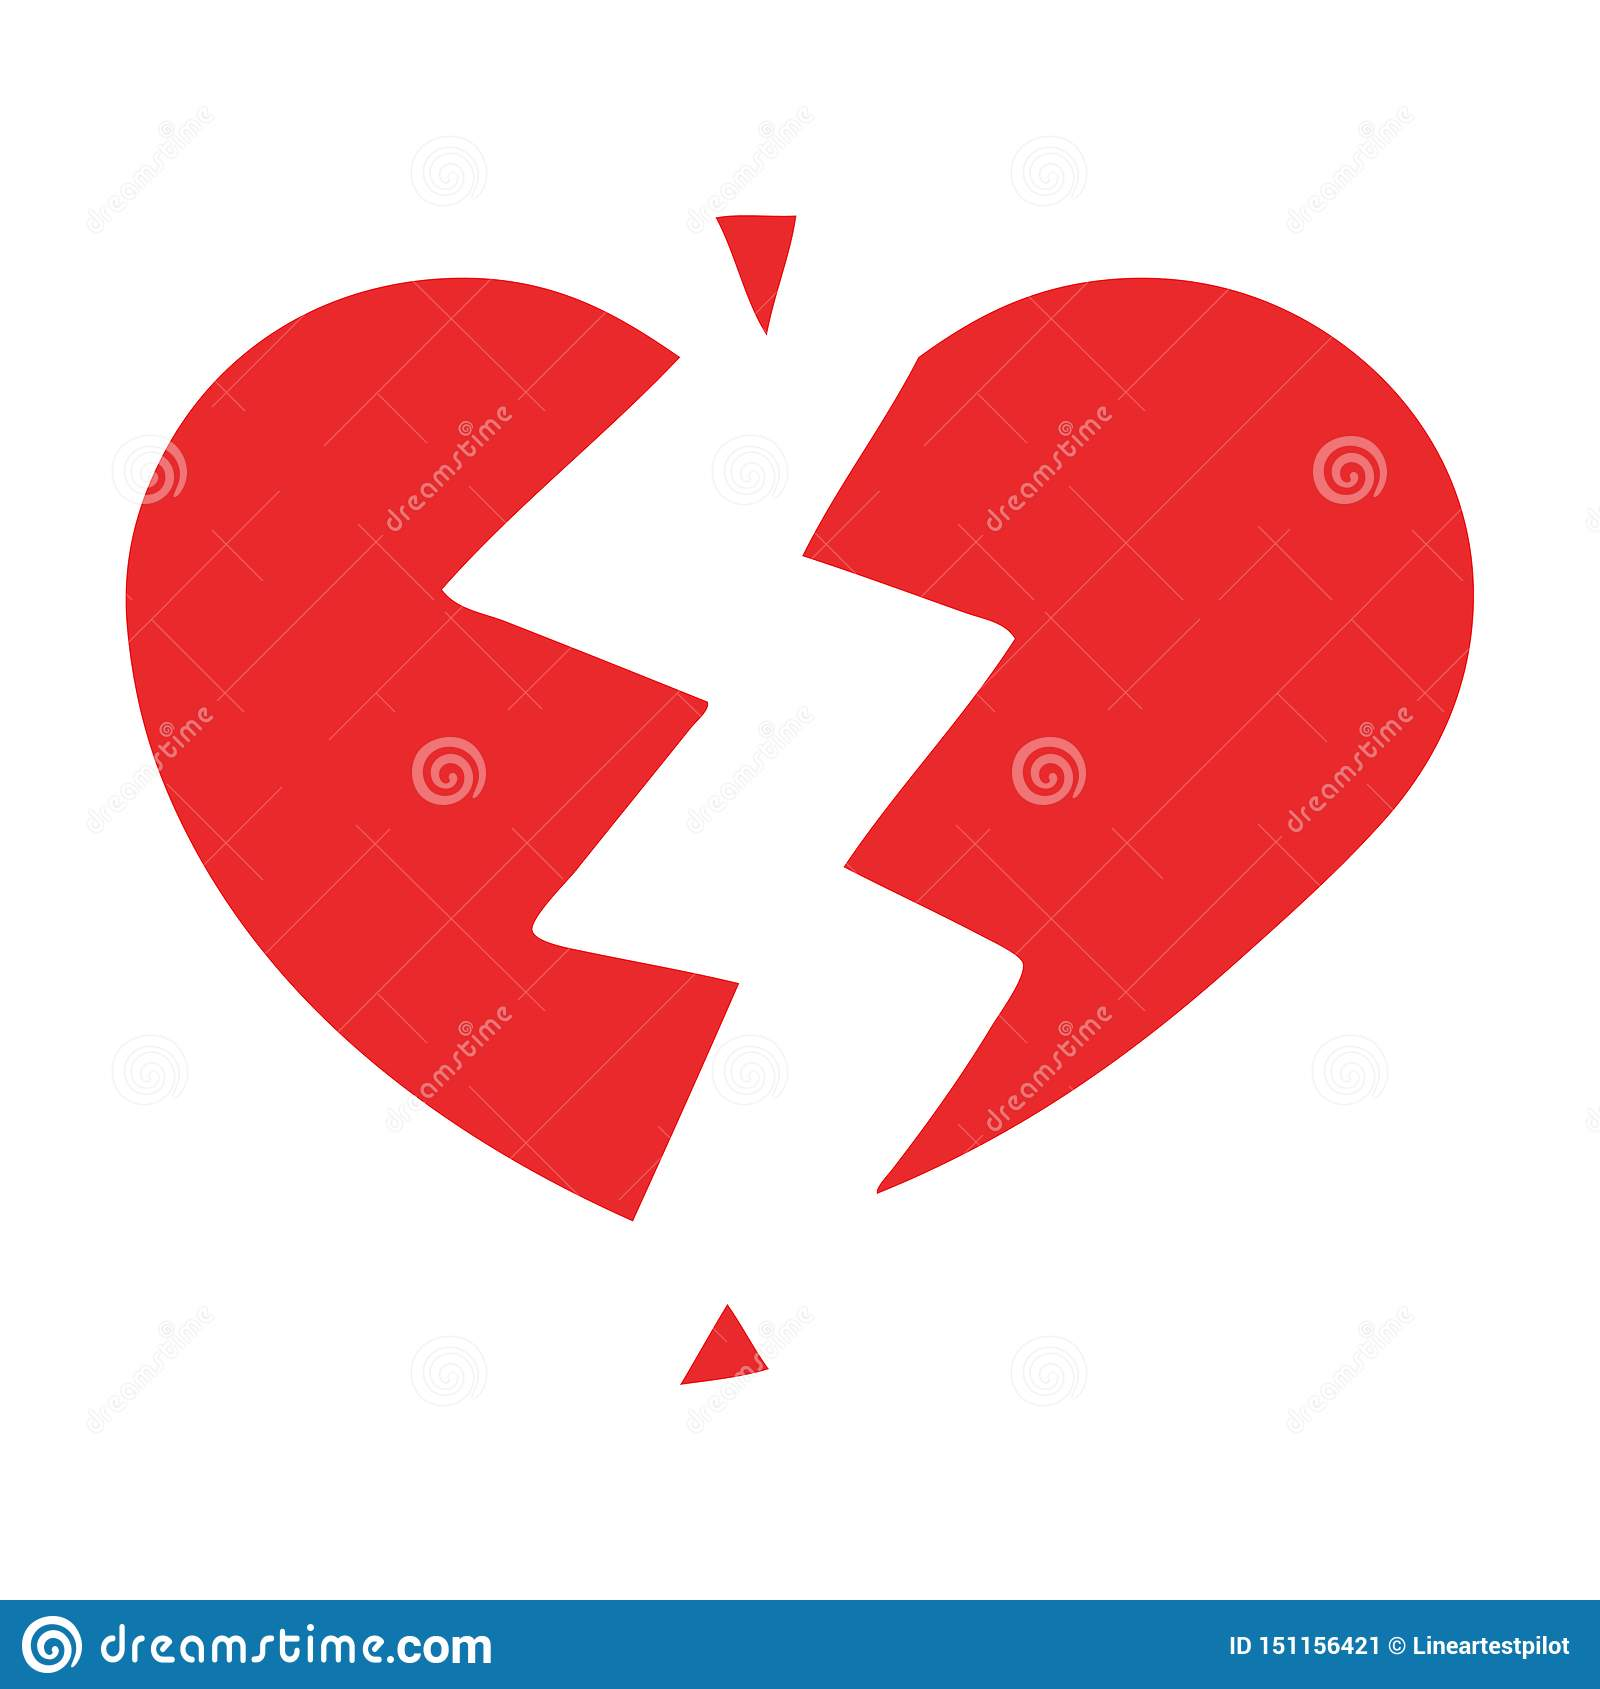 A creative flat color retro cartoon broken heart